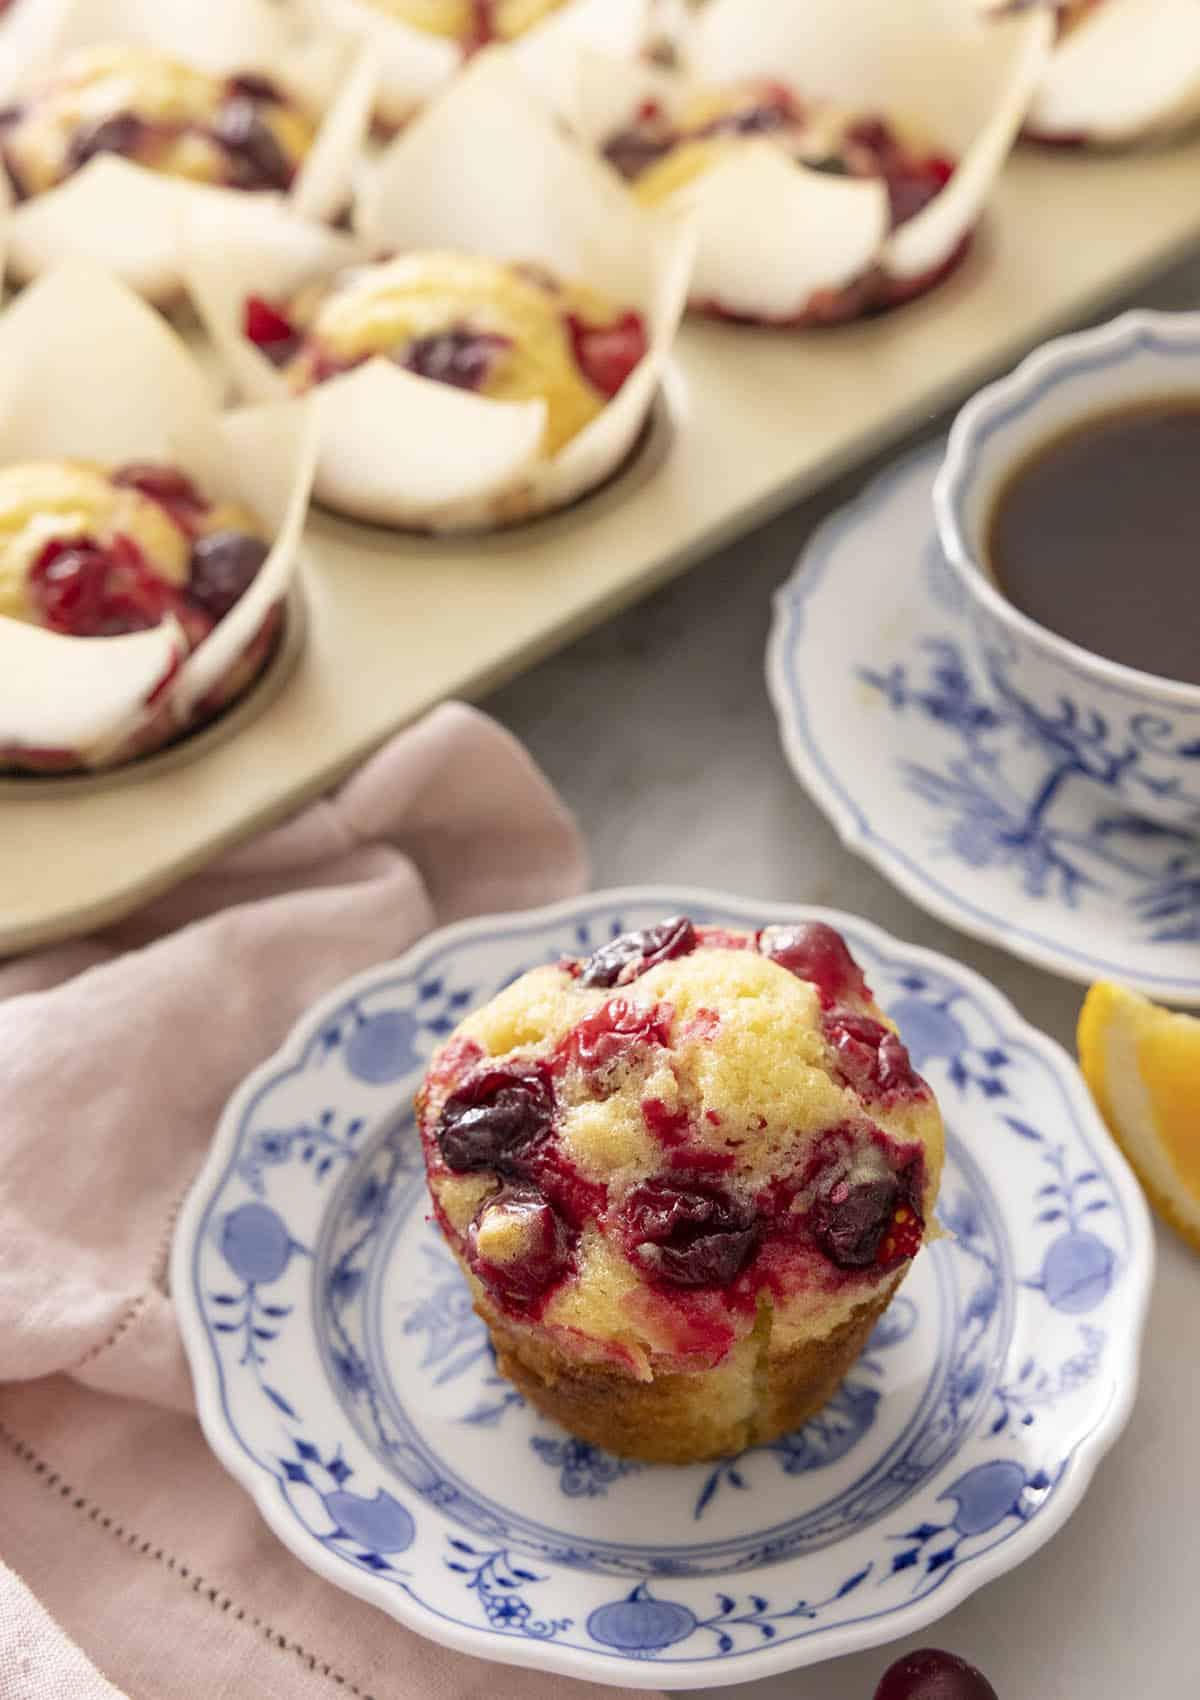 A plate with a cranberry orange muffin with more in the back.